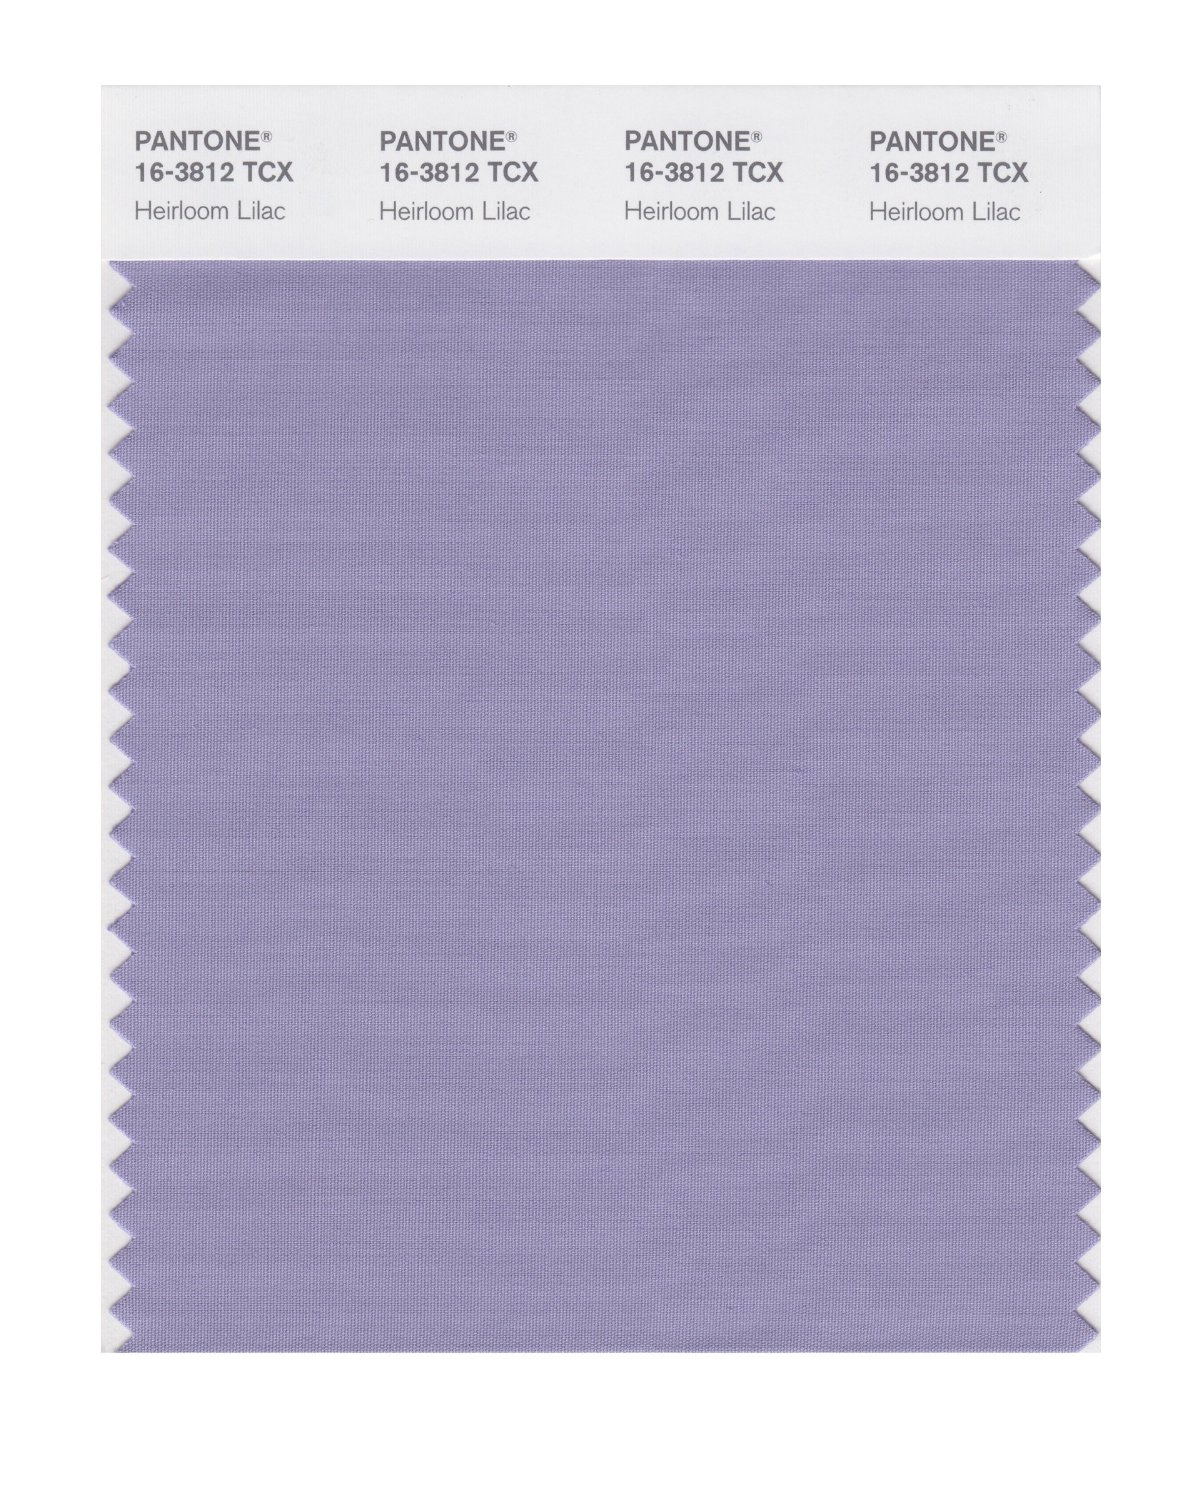 Pantone Smart Swatch 16-3812 Heirloom Lilac